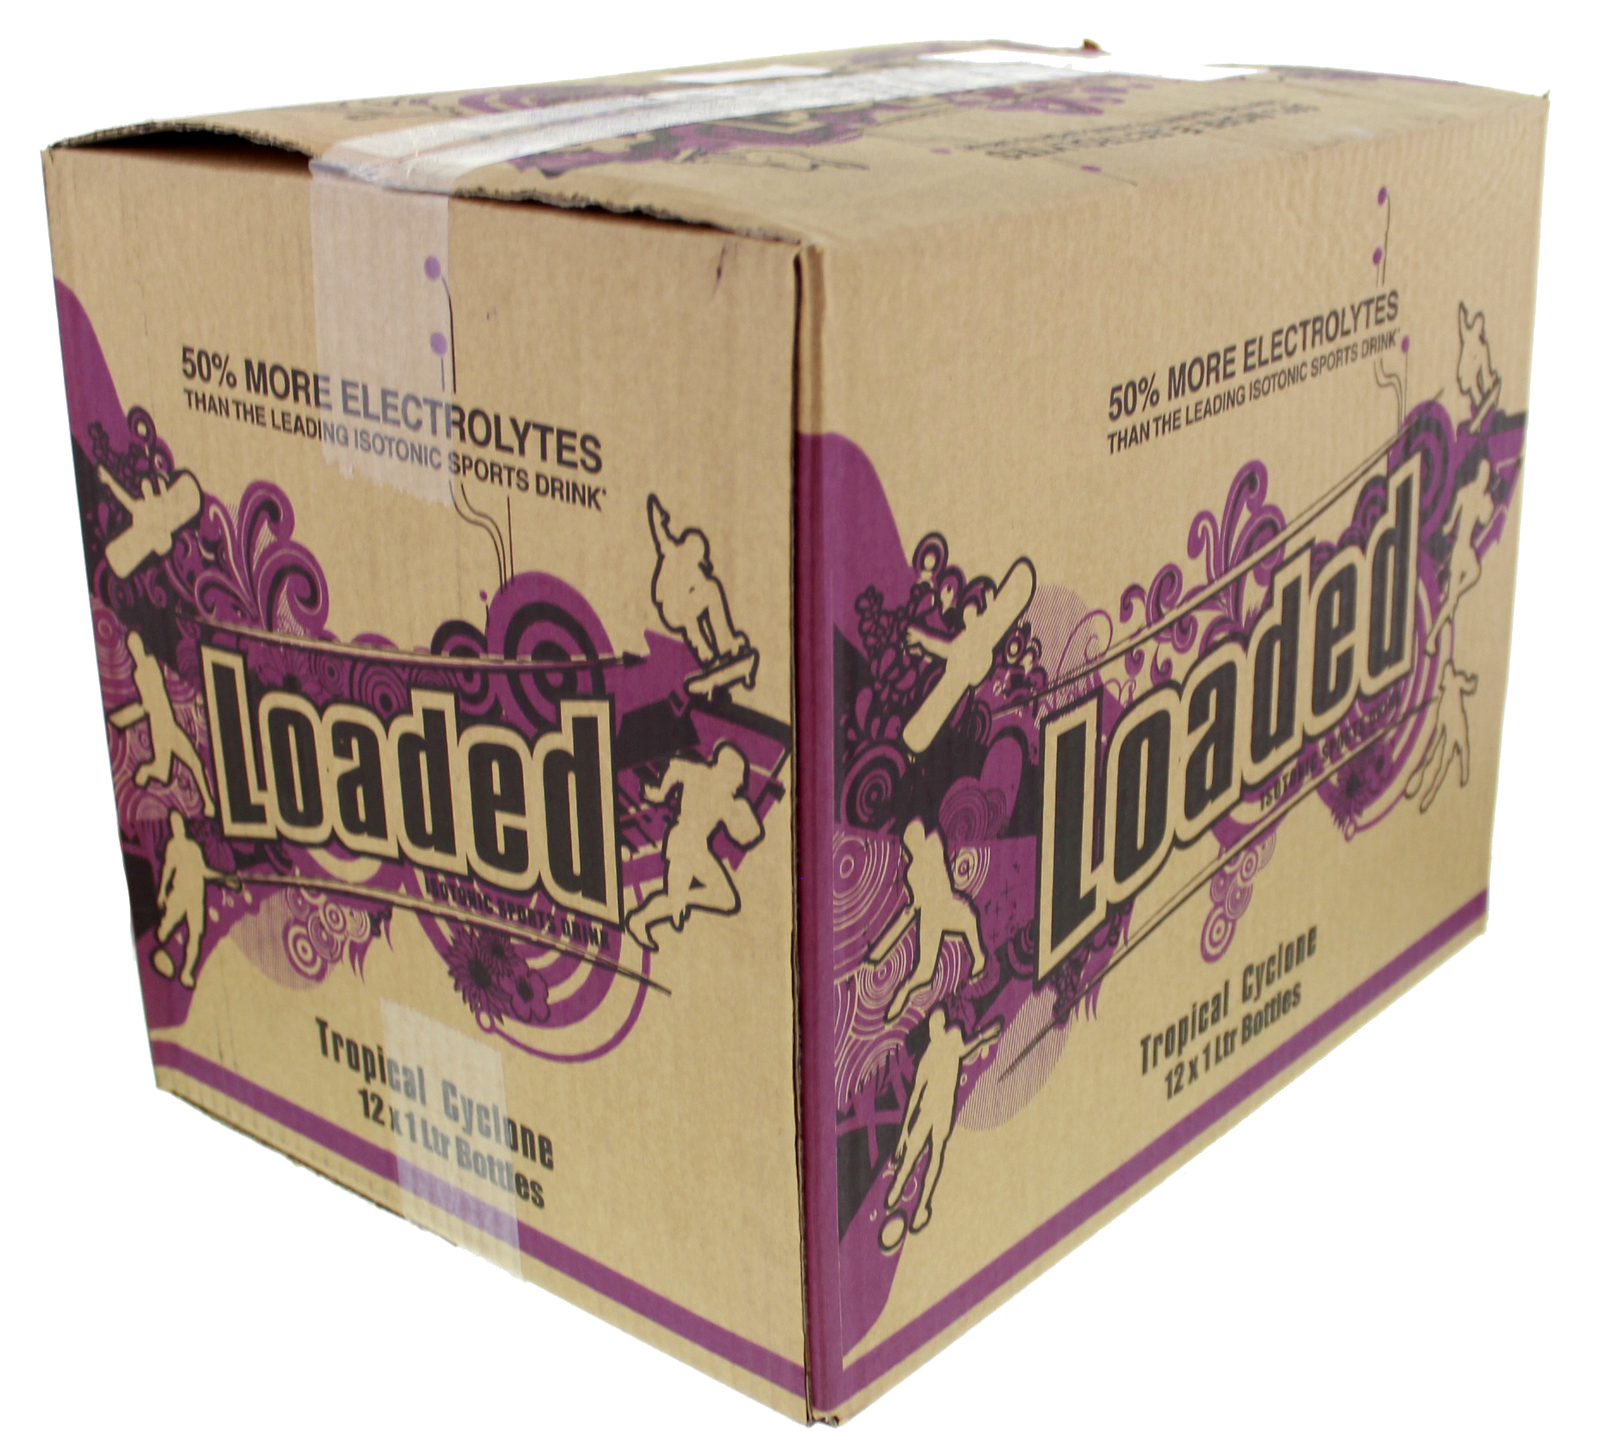 Loaded Sports Drink - Tropical Cyclone 1L (12 Pack) image